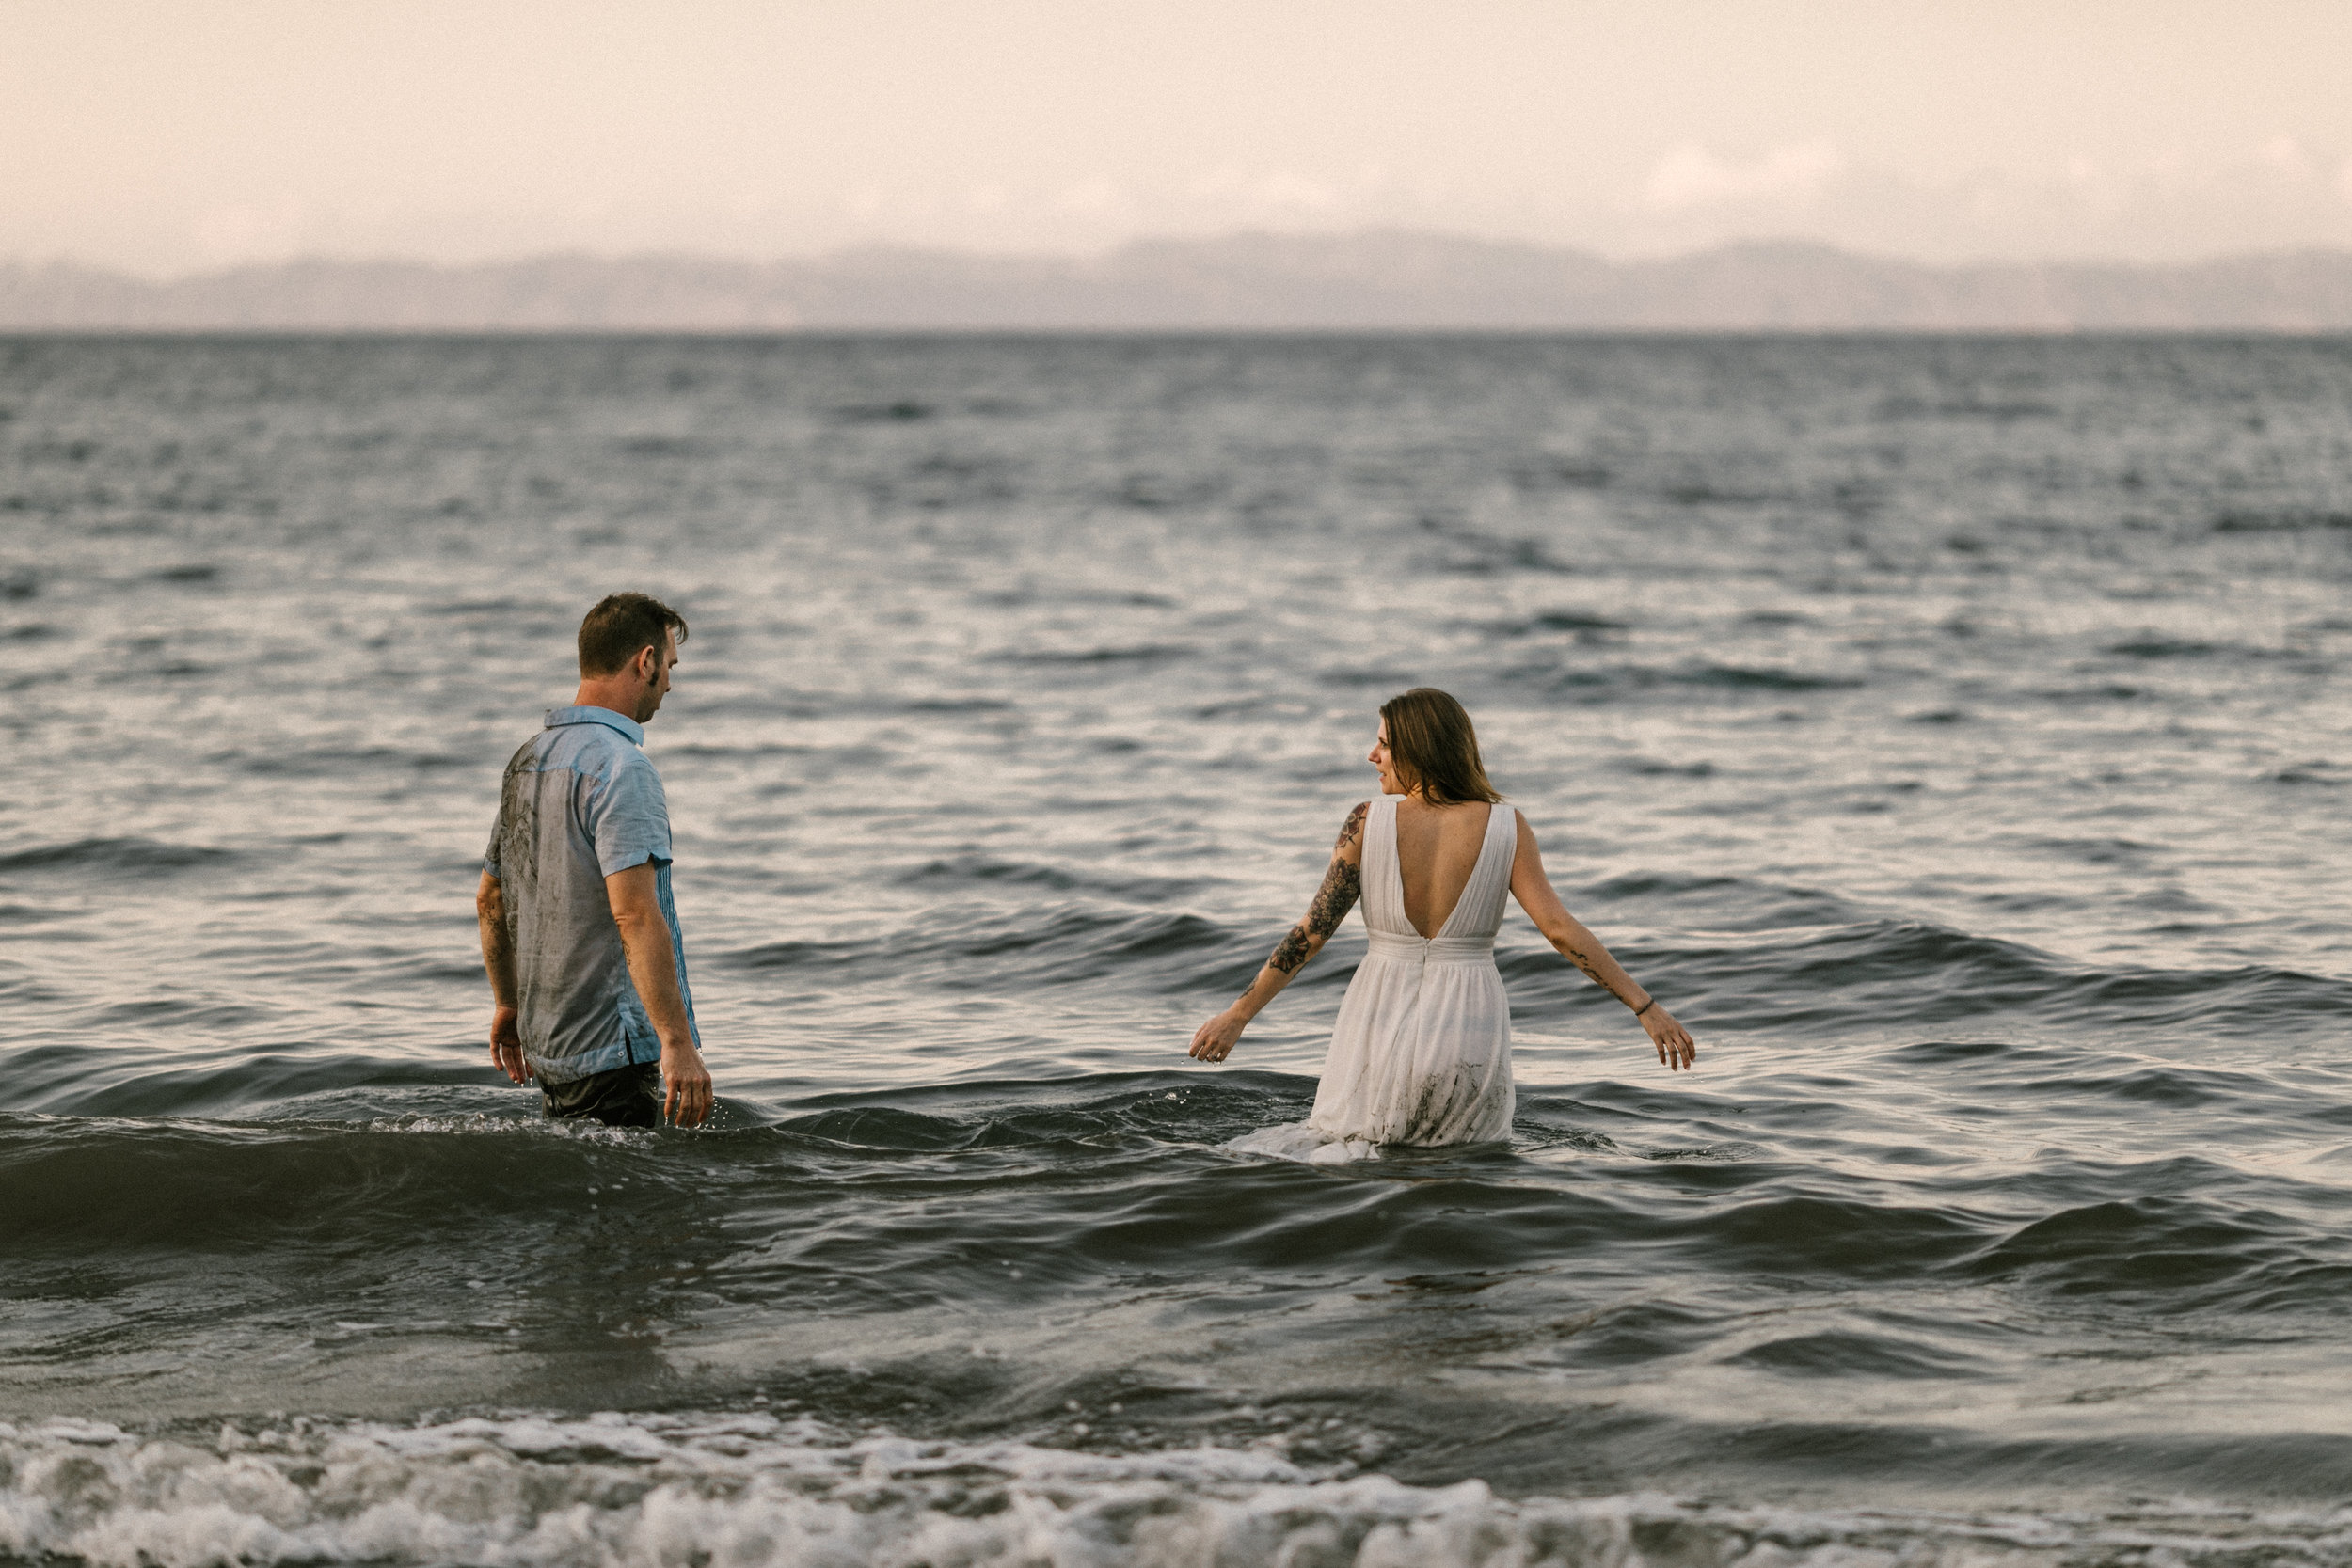 destination wedding and elopement traveling photographer photography Hawaii California